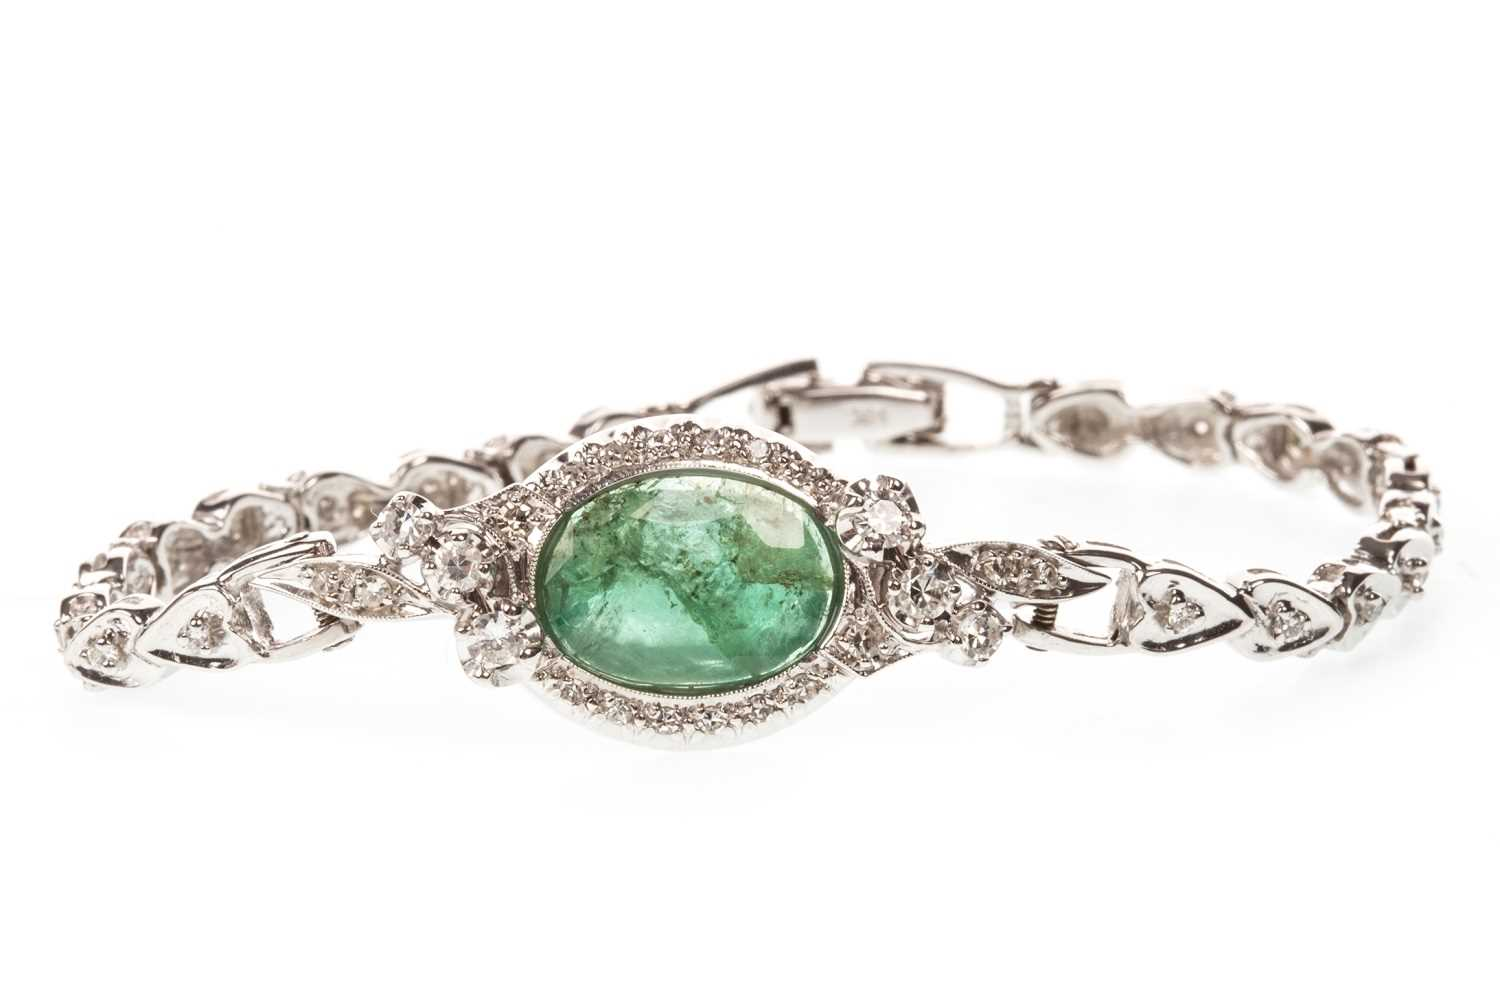 Lot 40-A CERTIFICATED EMERALD AND DIAMOND BRACELET